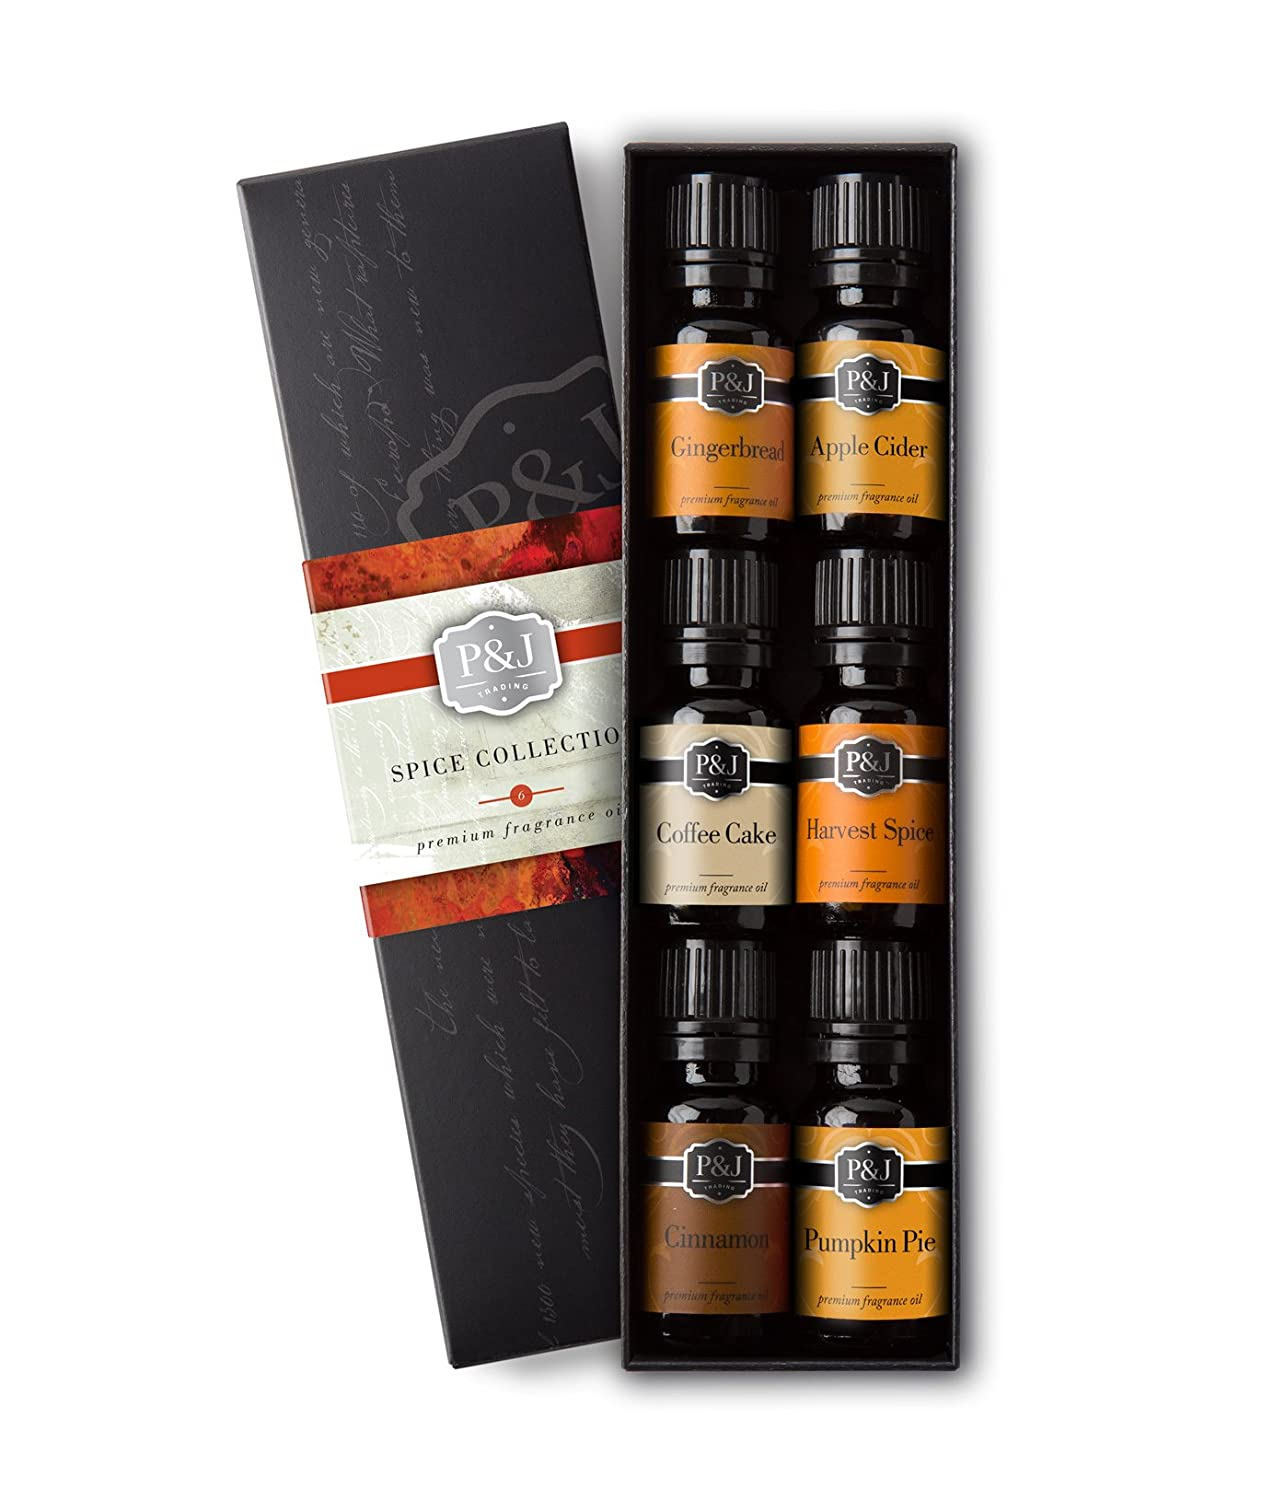 Spice Set of 6 Premium Grade Fragrance Oils - Cinnamon, Harvest Spice, Apple Cider, Coffee Cake, Gingerbread, Pumpkin Pie - 10ml